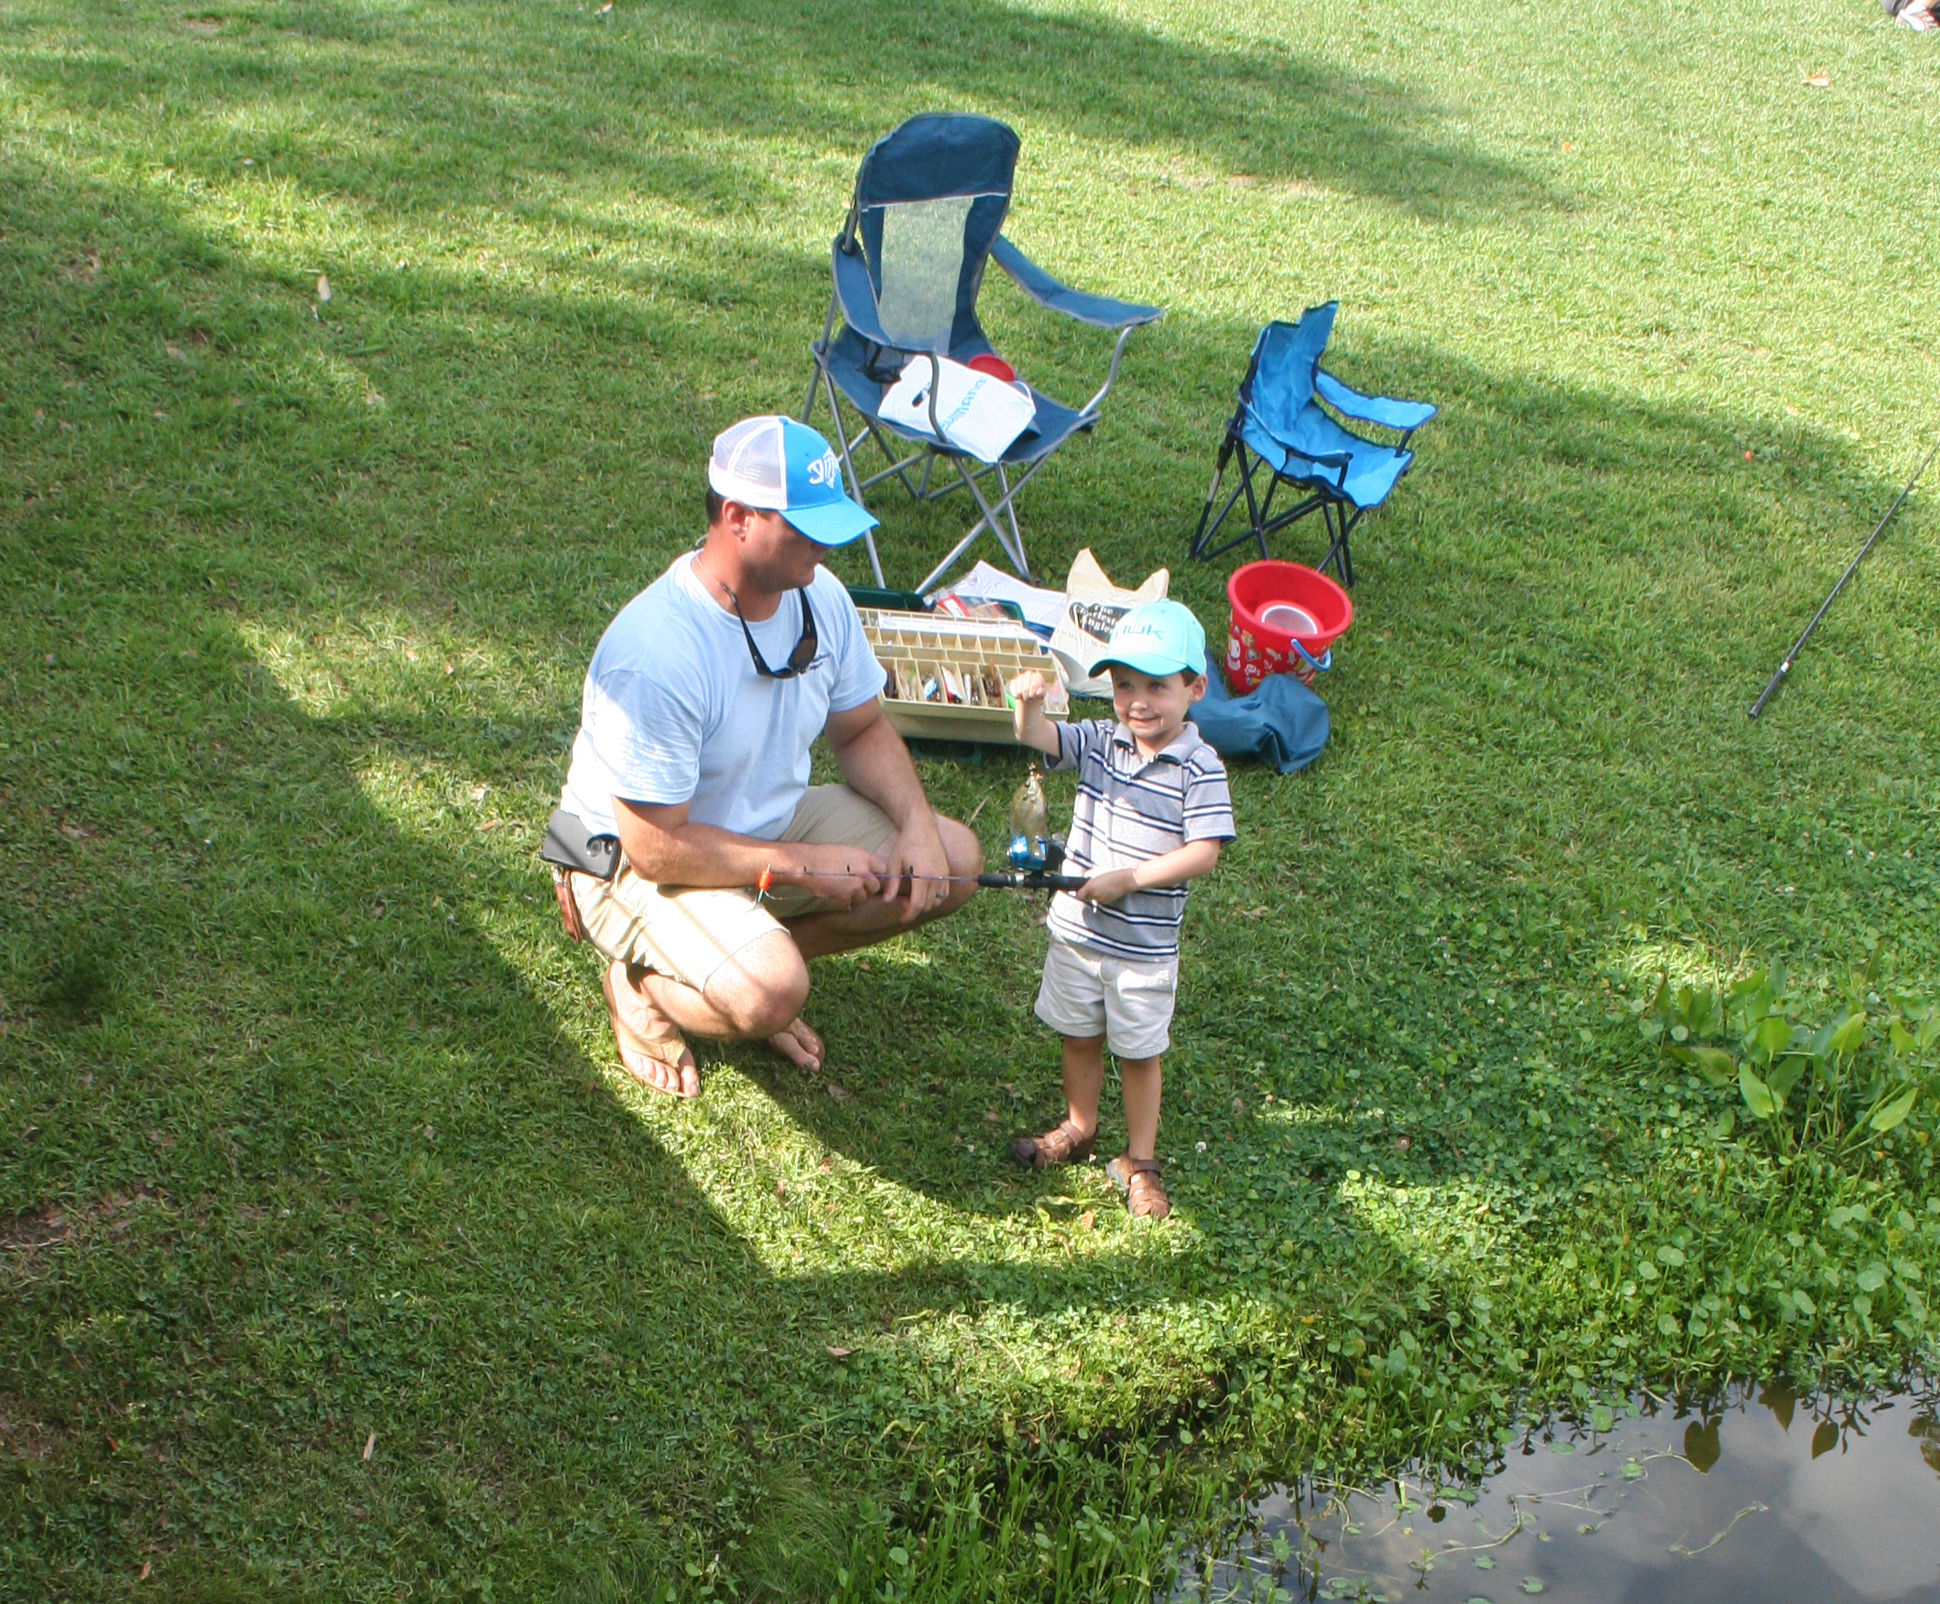 Whit Ford reels in a fish! His dad, Ryan, helps with the release.